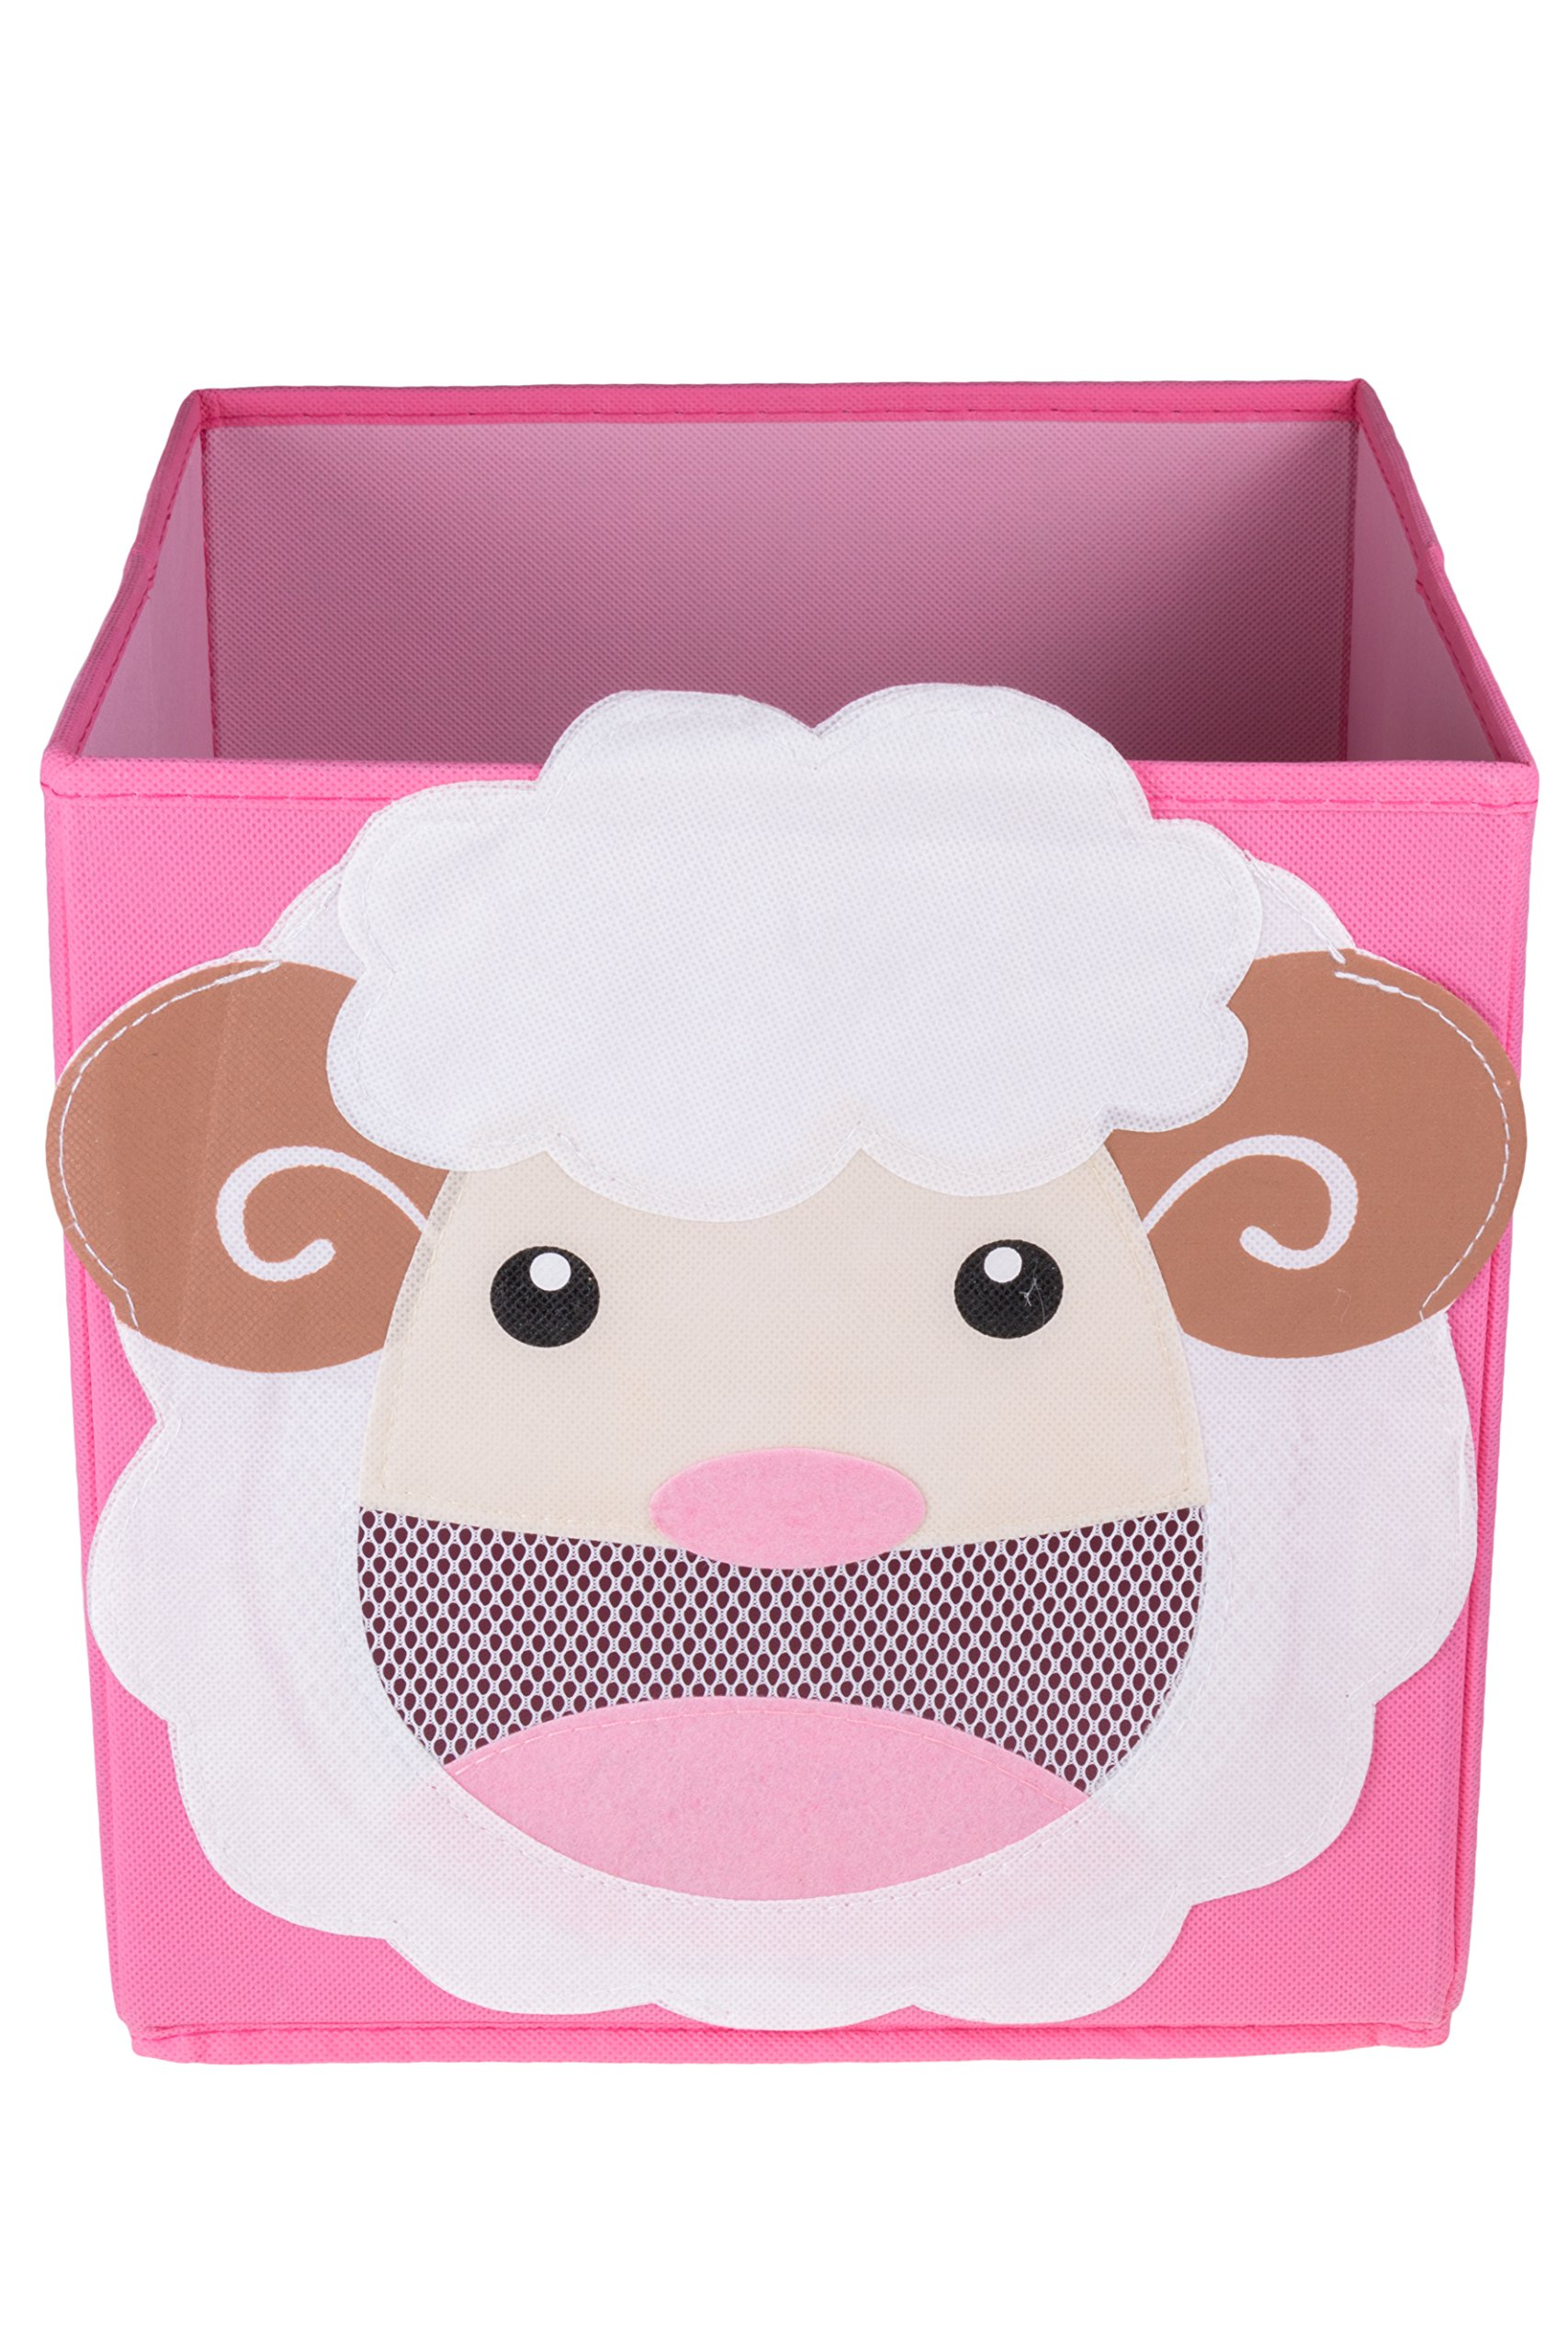 Clever Creations Cute Smiling Sheep Collapsible Toy Storage Organizer Toy Box Folding Storage Cube Kids Bedroom | Perfect Size Storage Cube Books, Kids Toys, Baby Toys, Baby Clothes